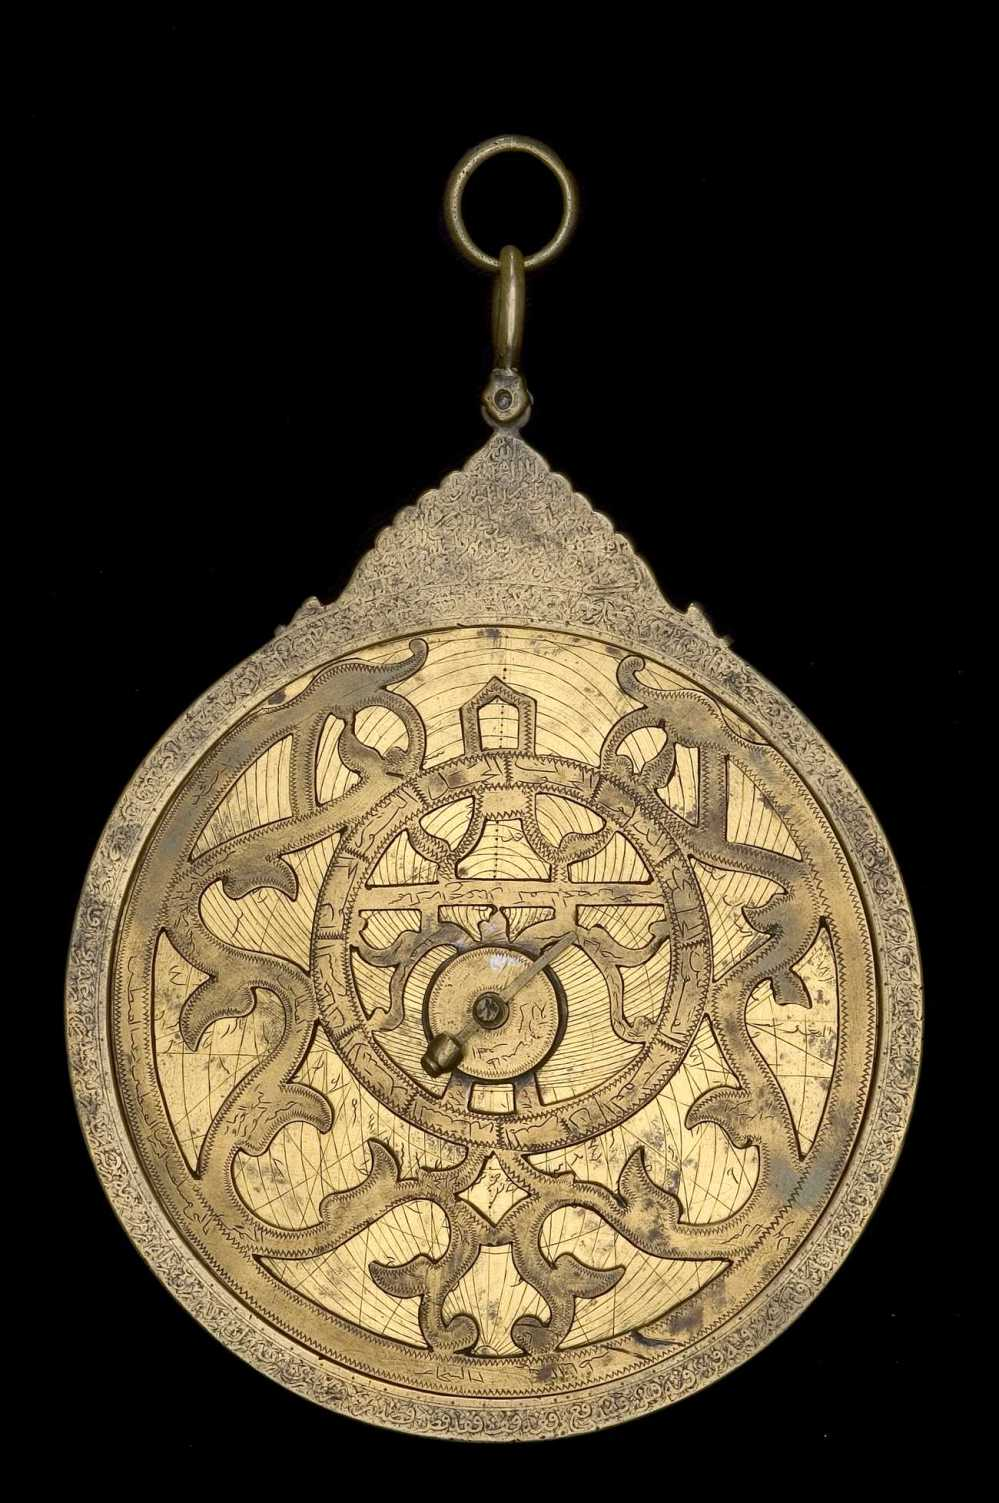 preview image for Astrolabe, by Muhammad Mahdi al-Khadim al-Yazdi, Persian, c. 1650